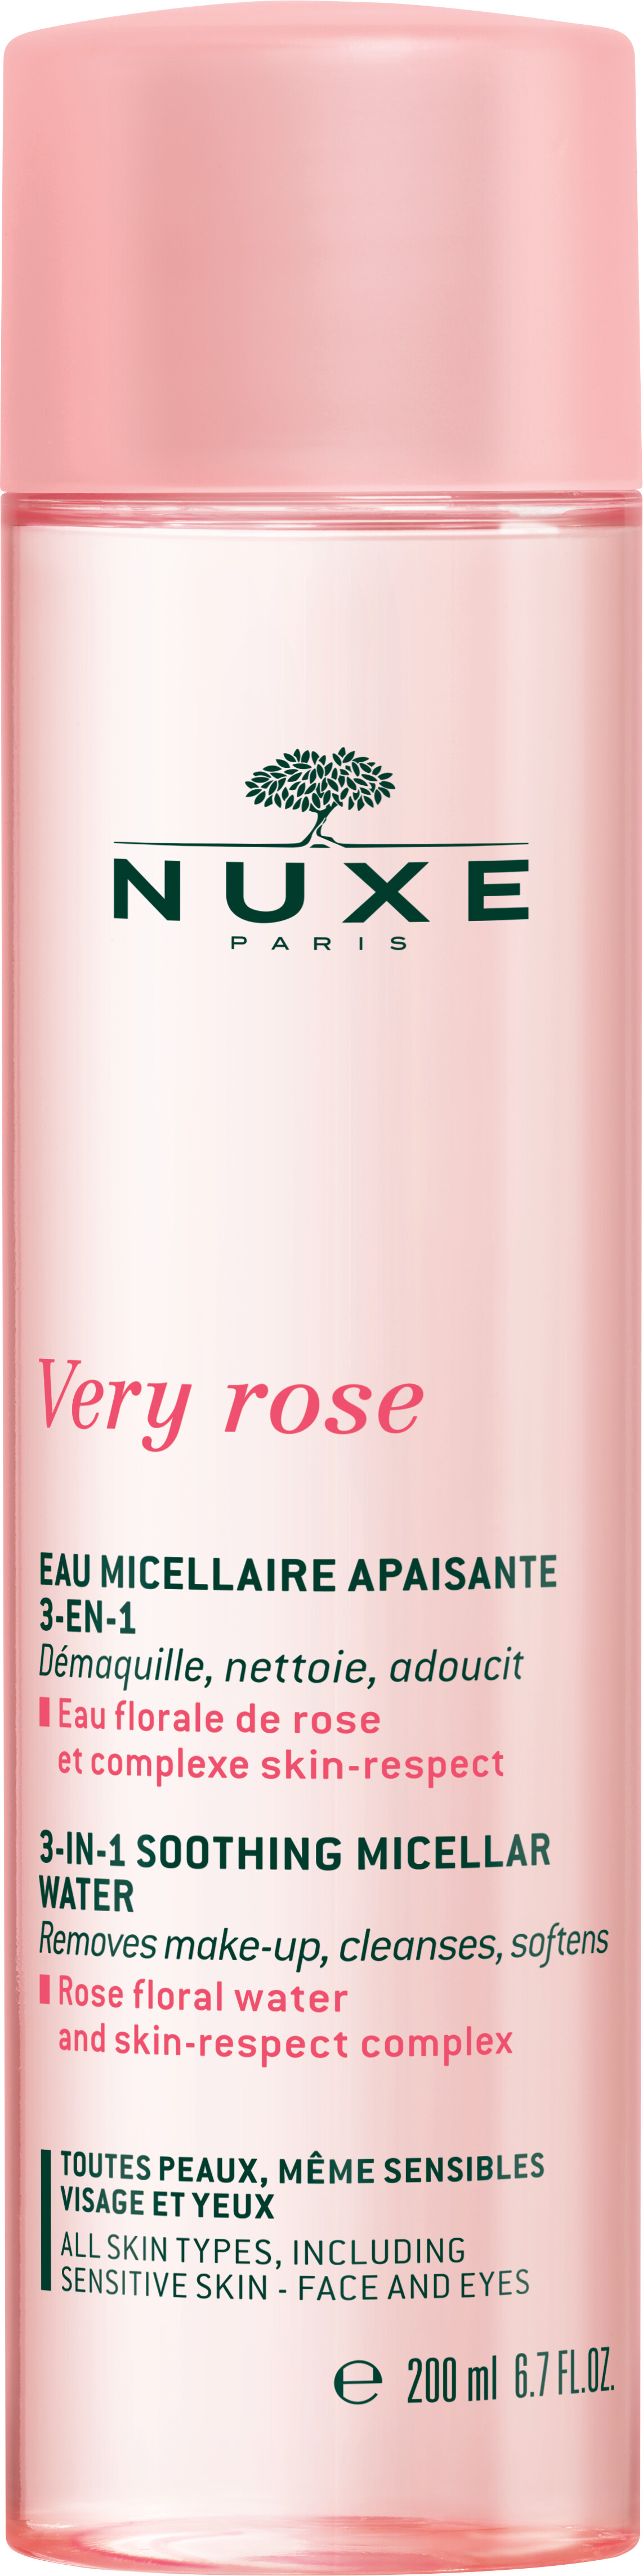 Nuxe Very Rose 3-in-1 Soothing Micellar Water 200ml